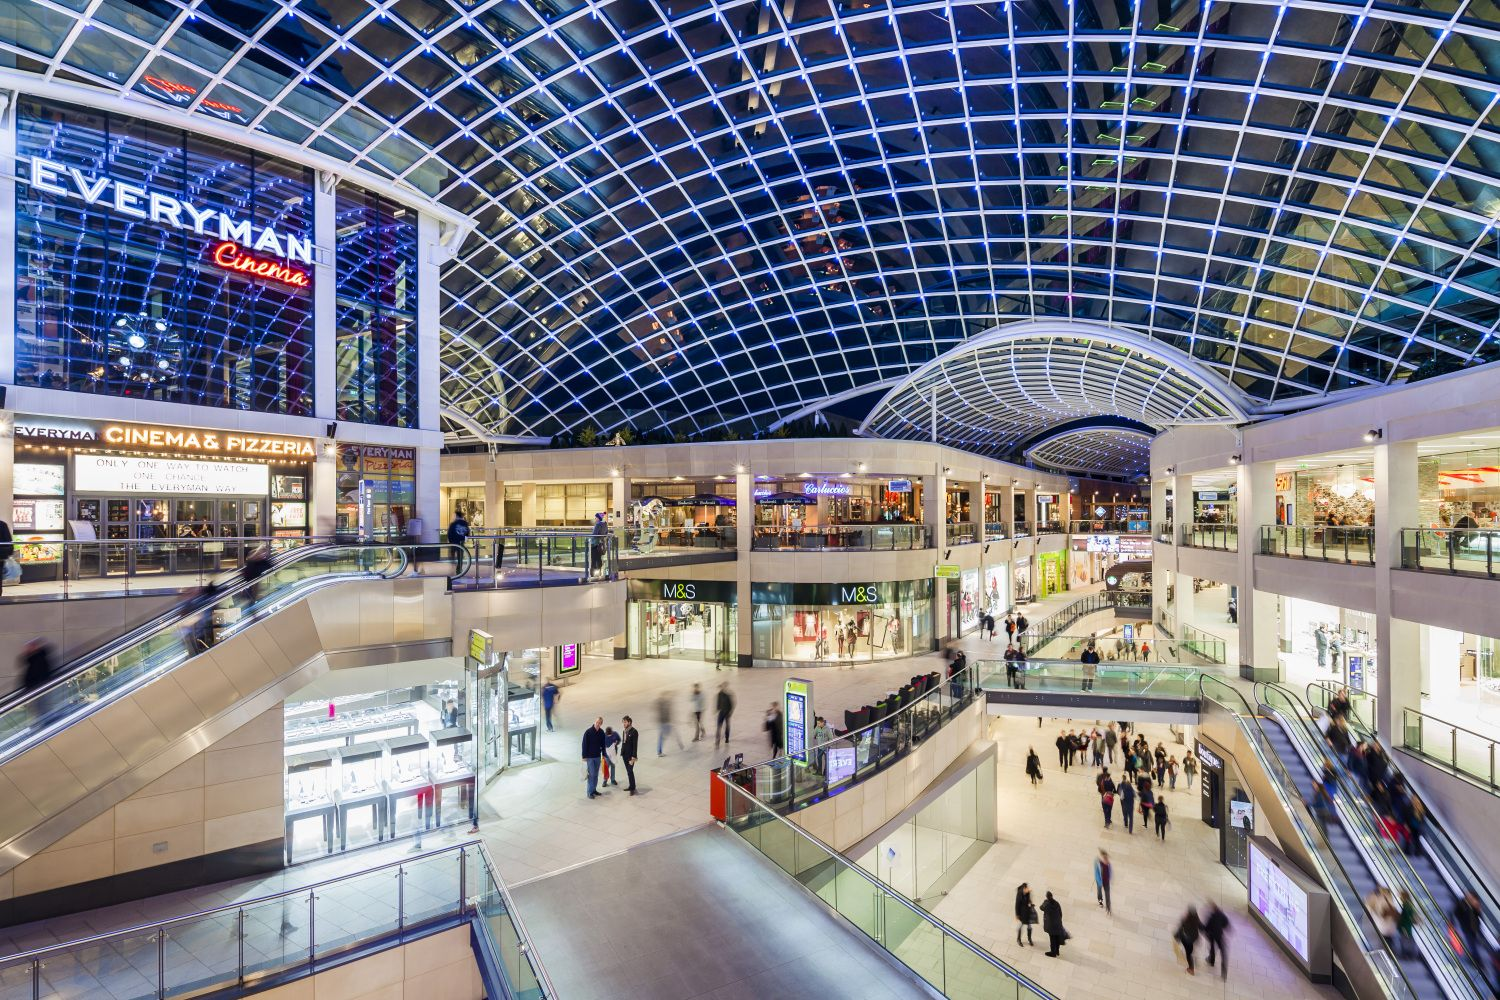 Bielefeld Shopping Trinity Leeds Uk Retail In 2019 Leeds Shopping Center